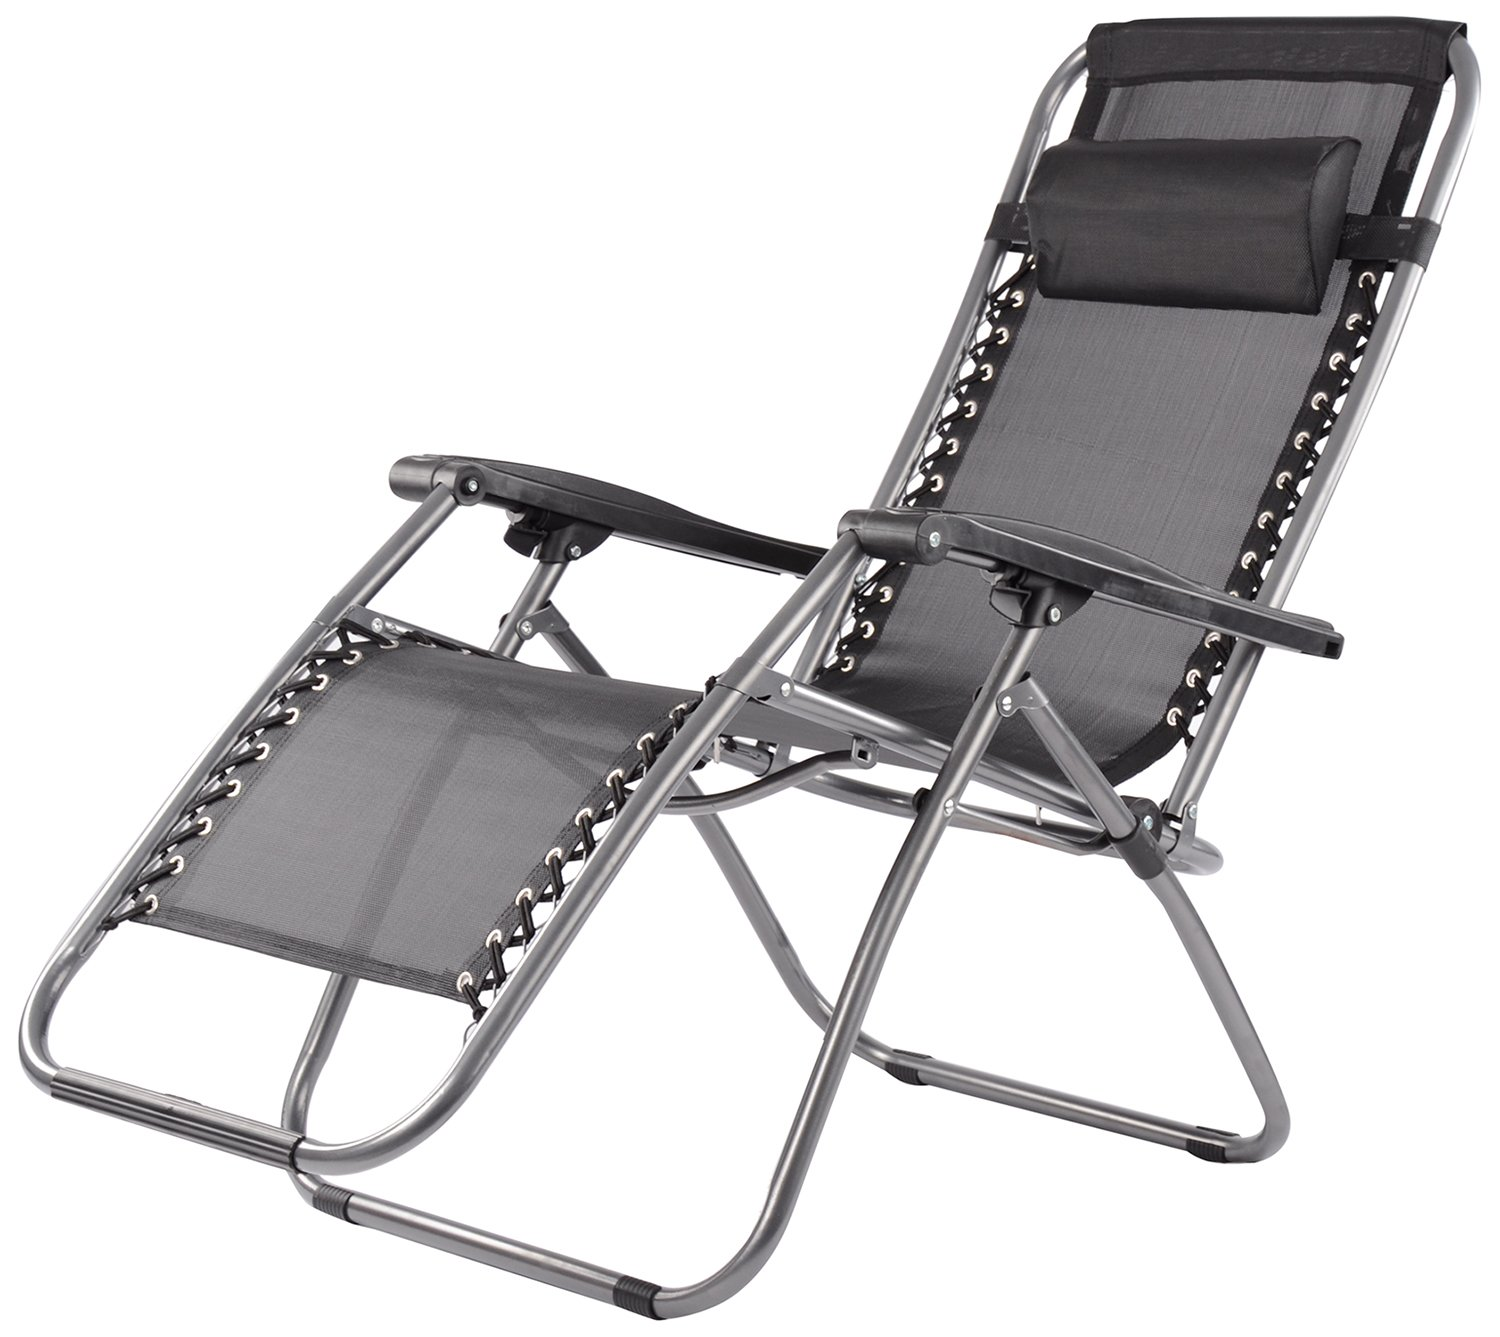 Elite Zero Gravity Relax Recliner Folding Chair Black Amazon